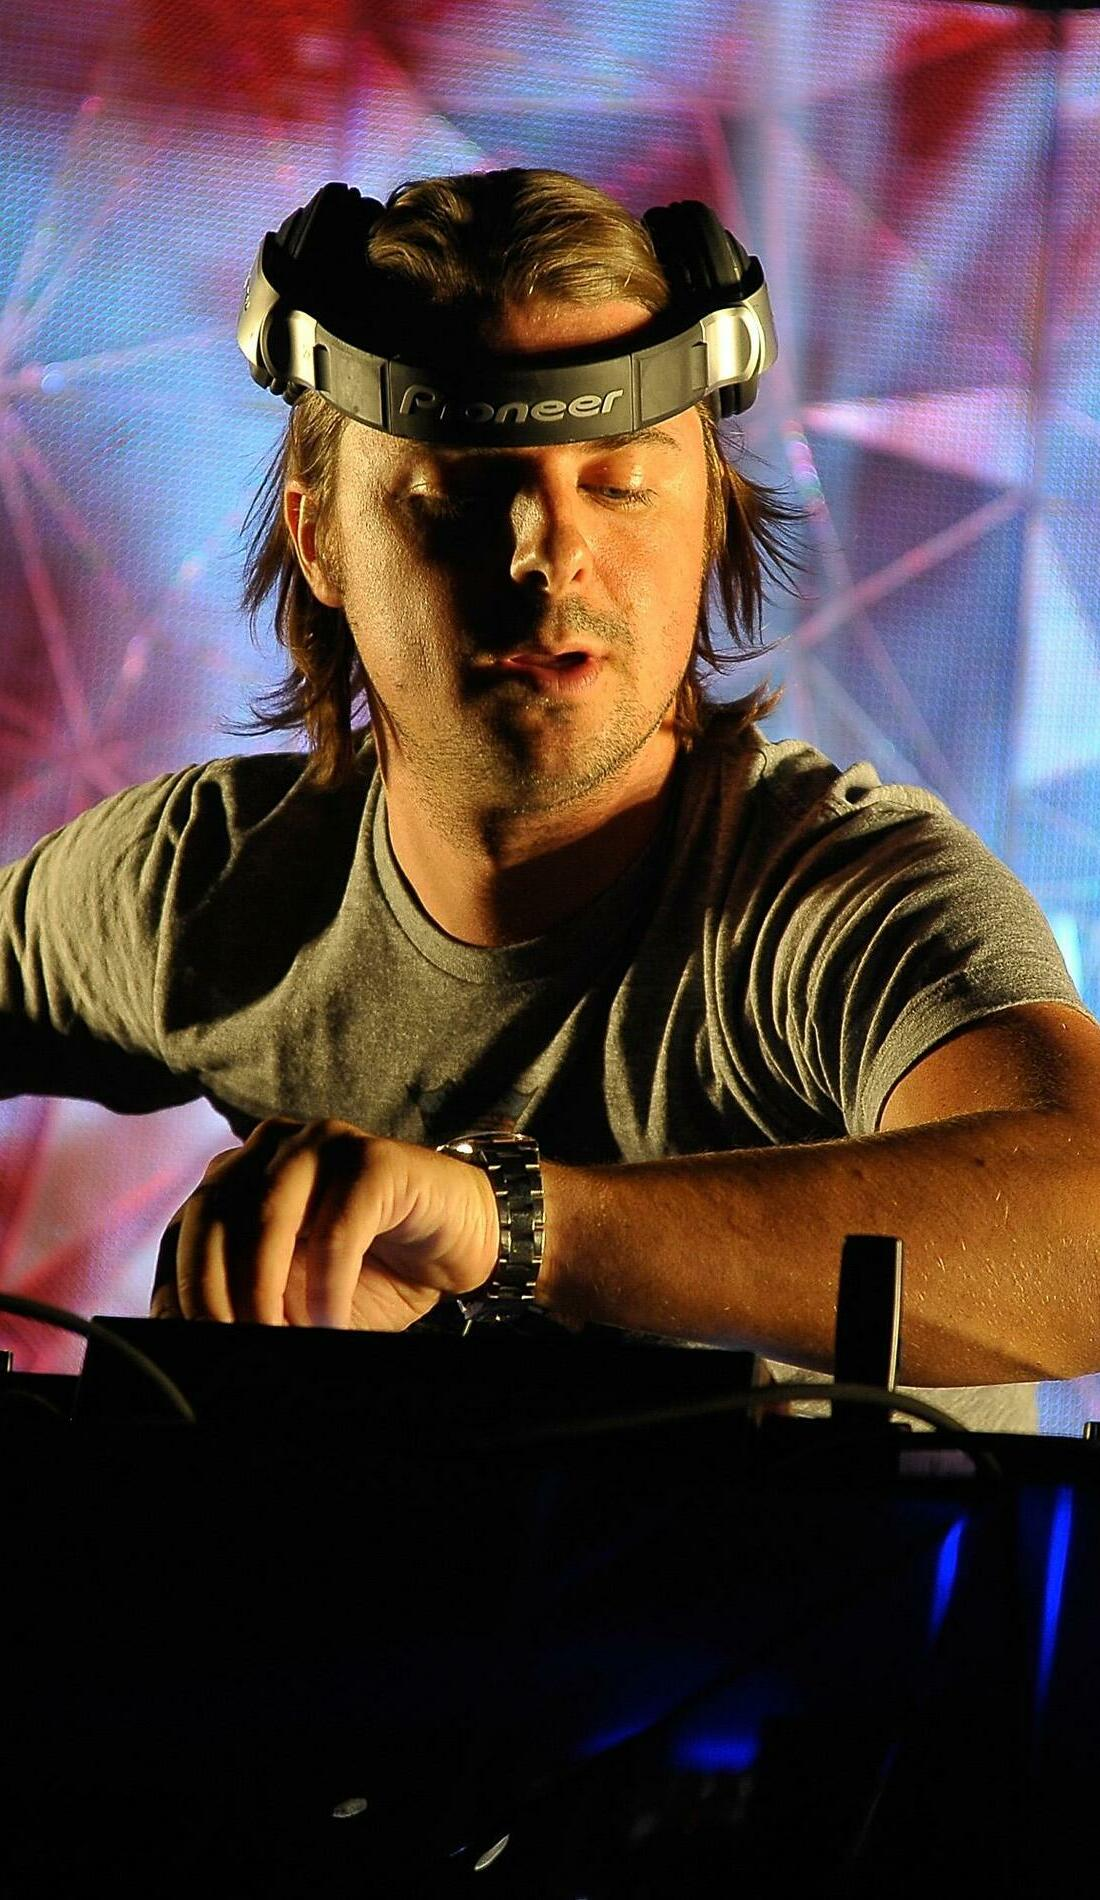 A Axwell live event